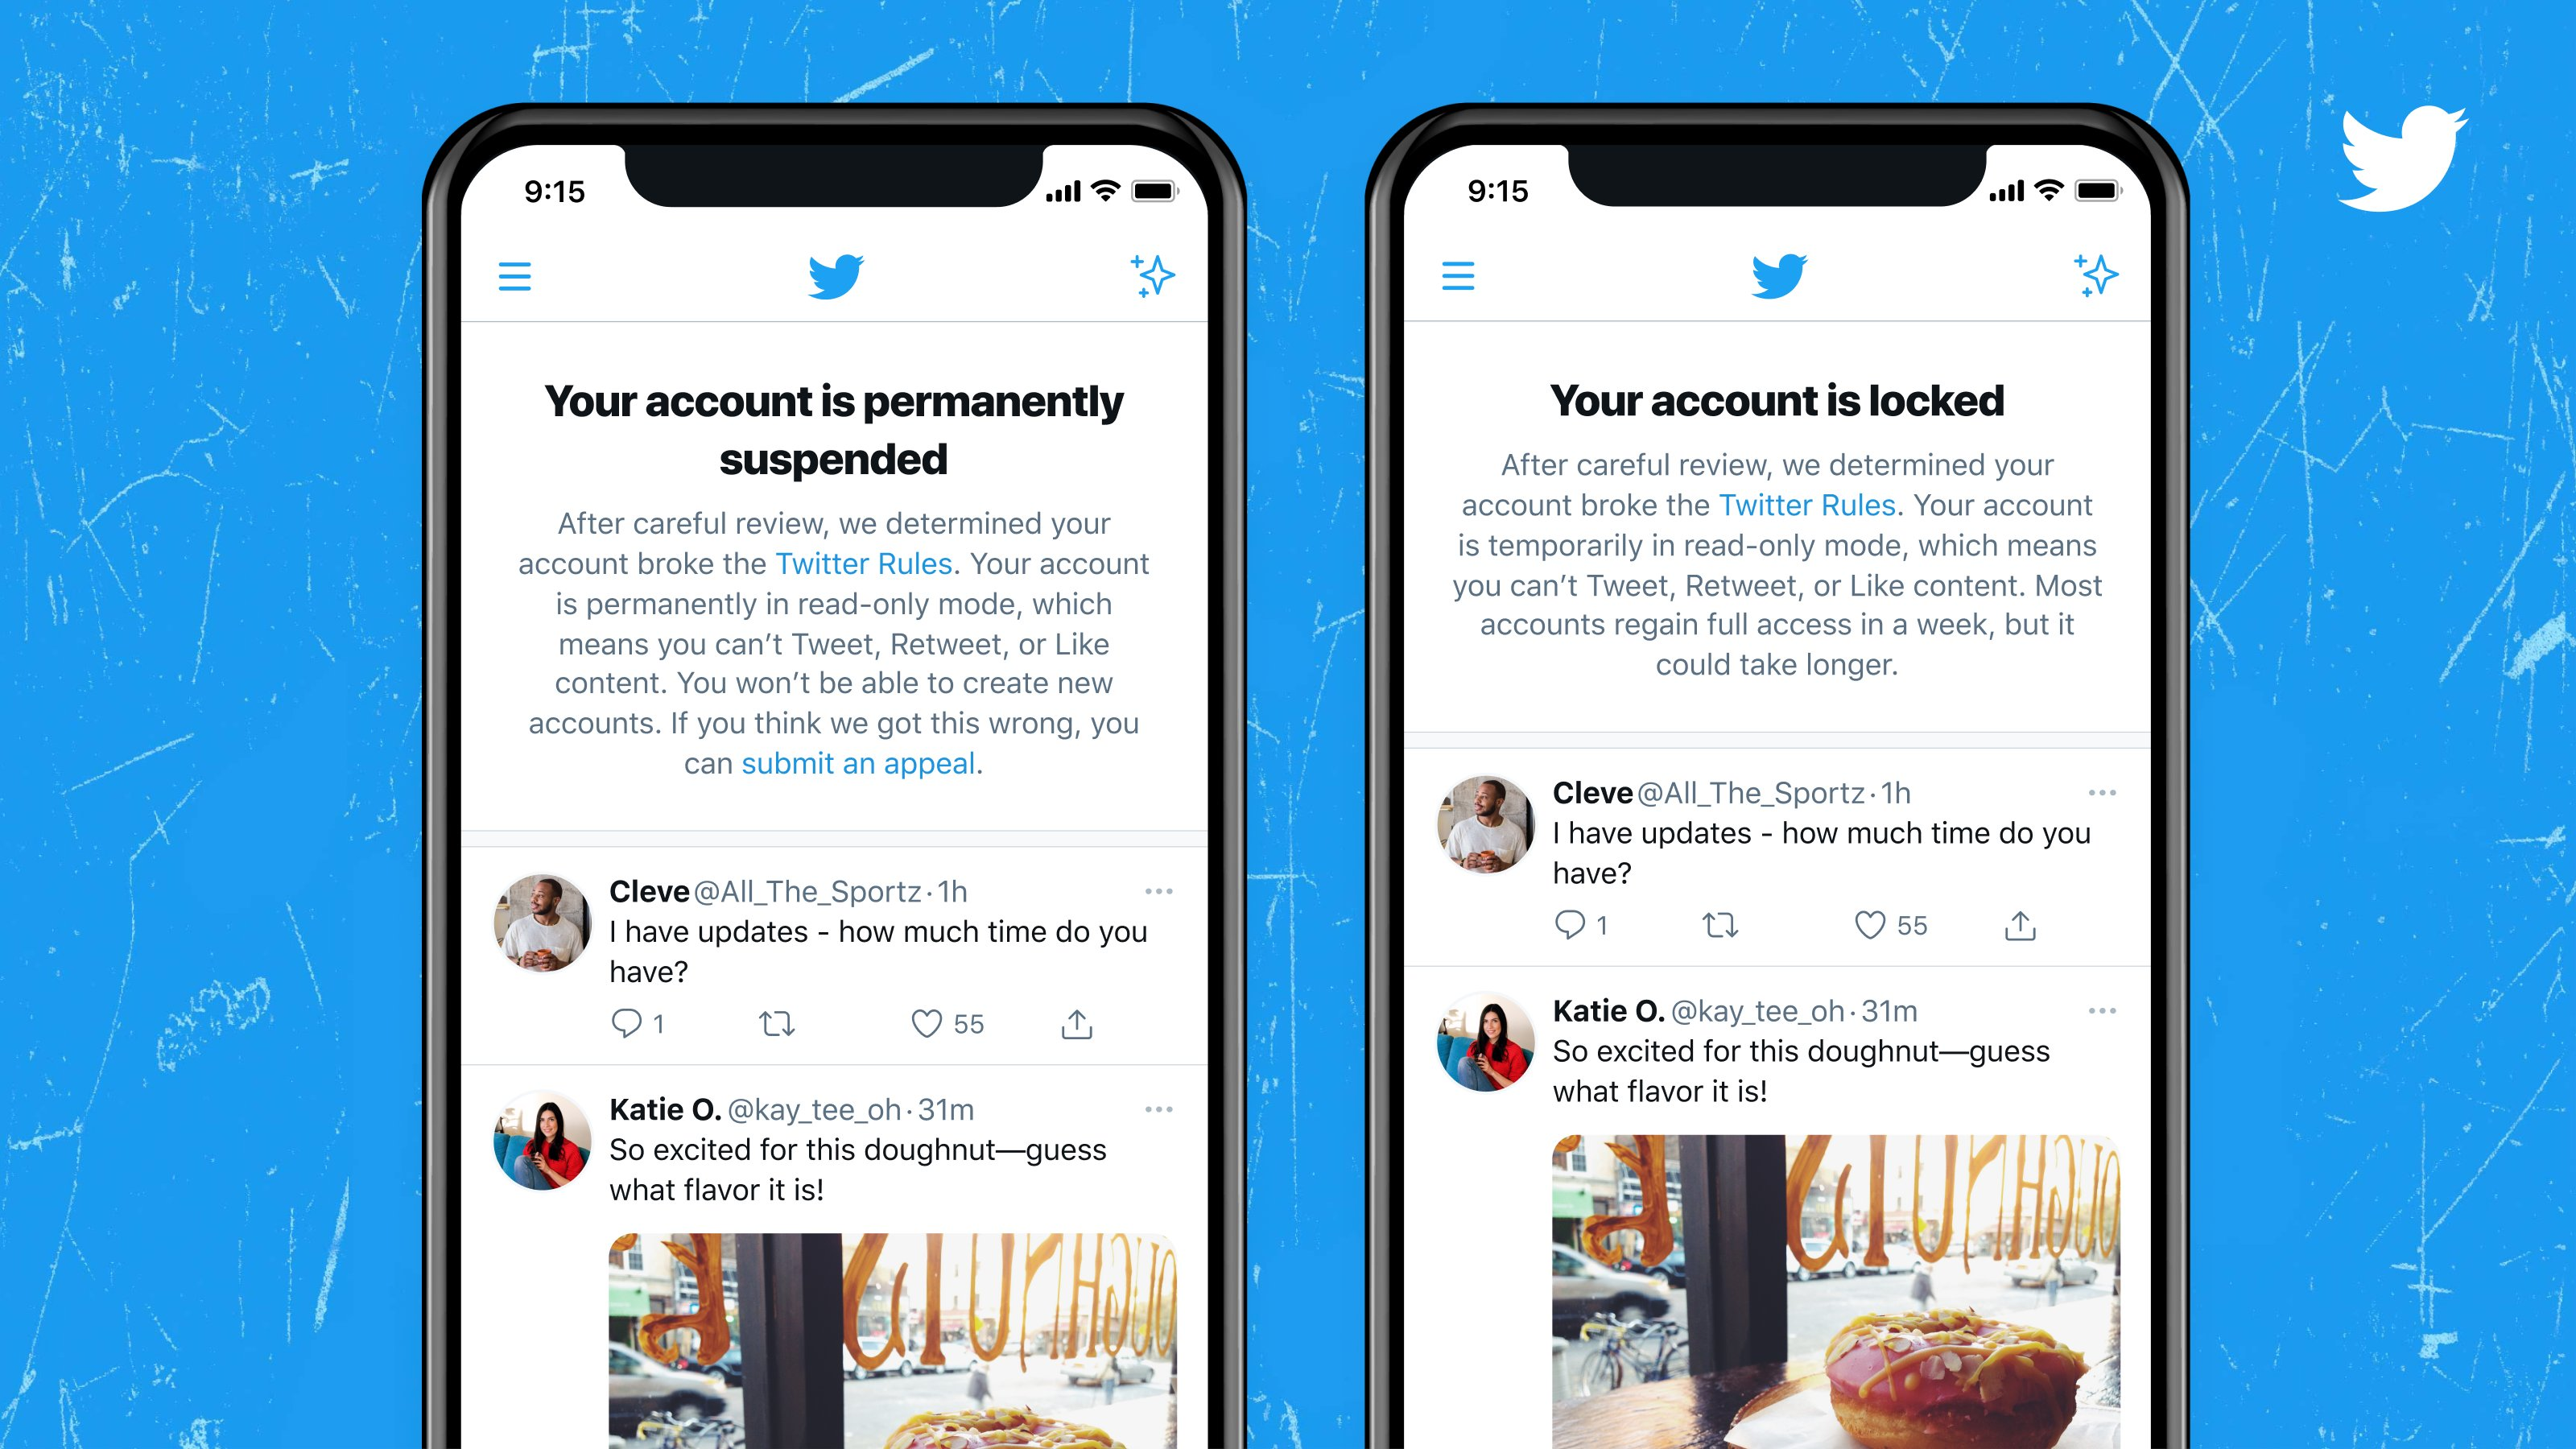 Two iPhone screenshots showing notices in the Twitter app when the account is permanently suspended or locked